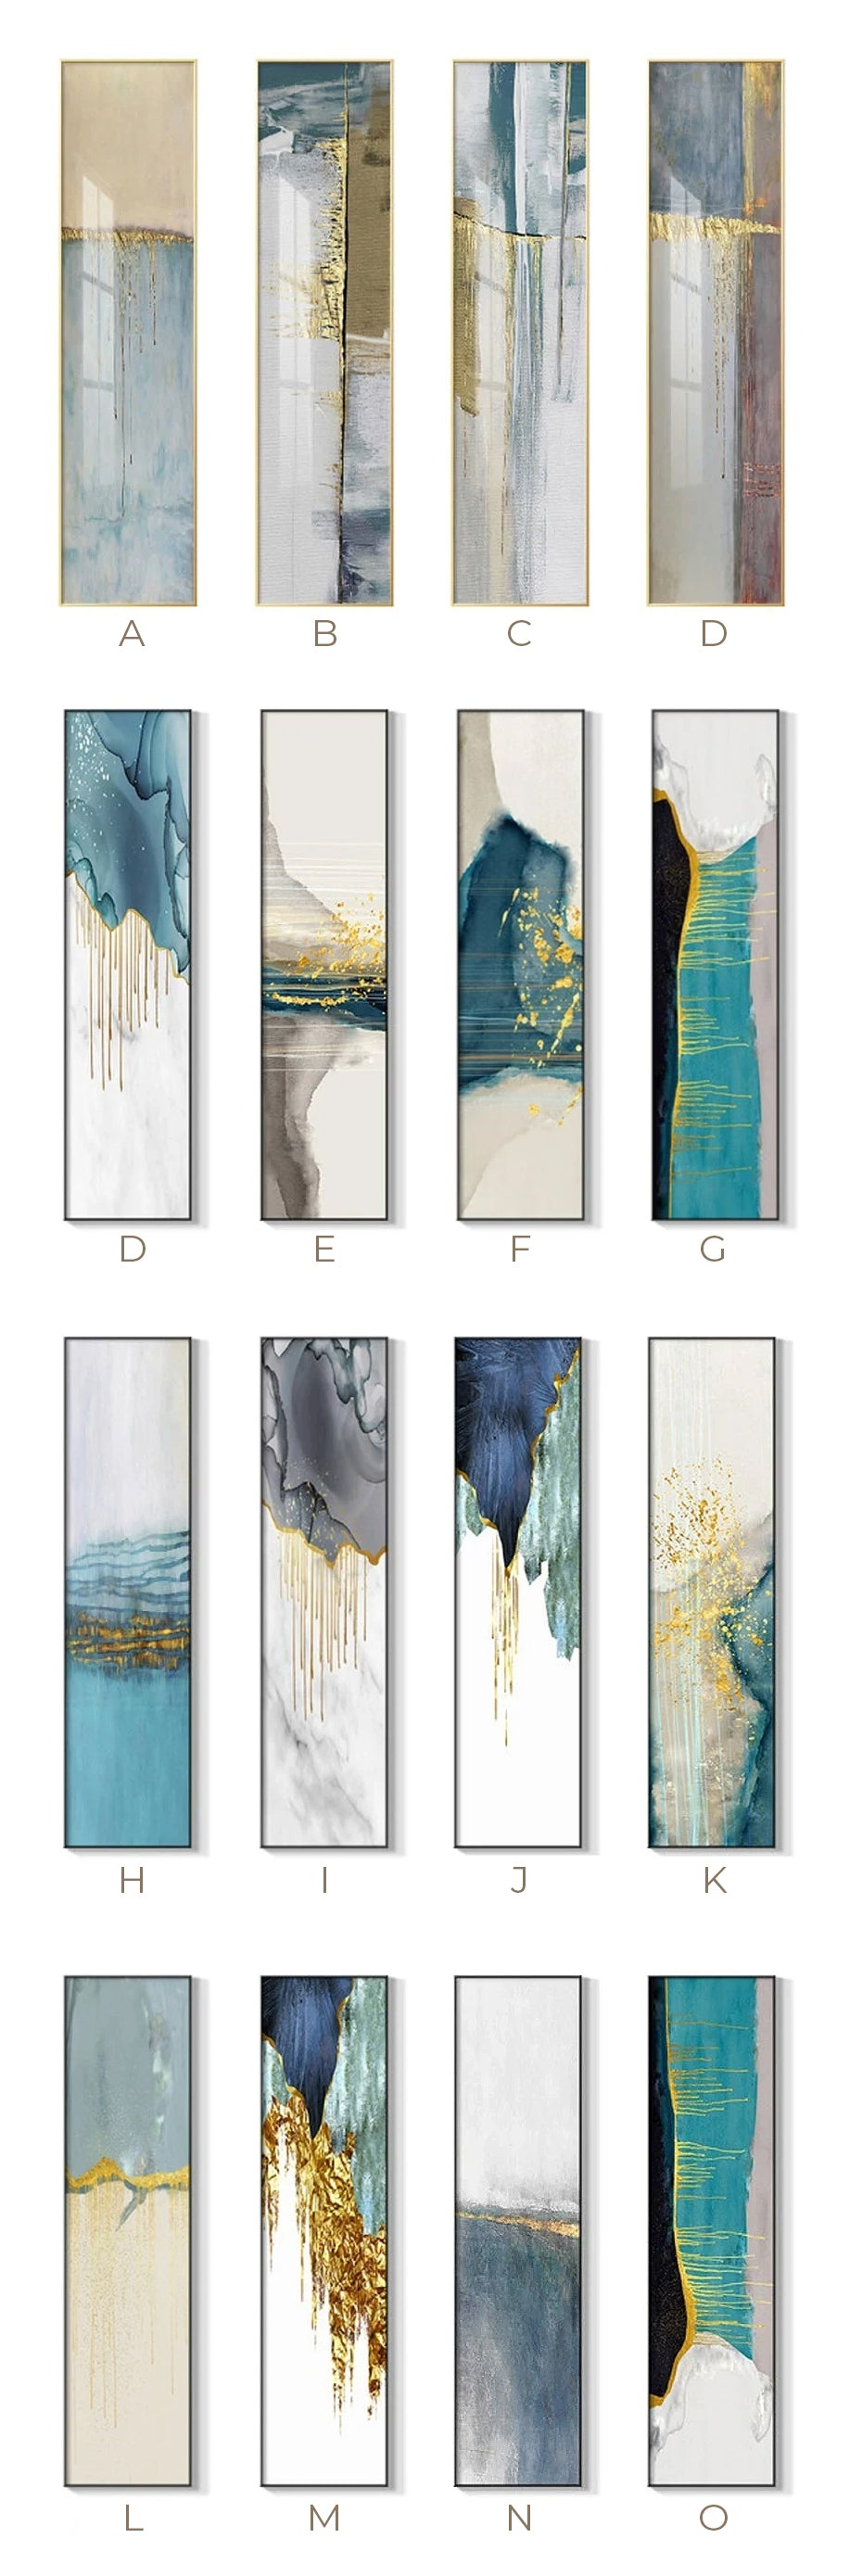 Abstract Geomorphic Elements Vertical Strip Wall Art Fine Art Canvas Prints Wide Format Pictures For Living Room Bedroom Home Office Loft Wall Art Decor